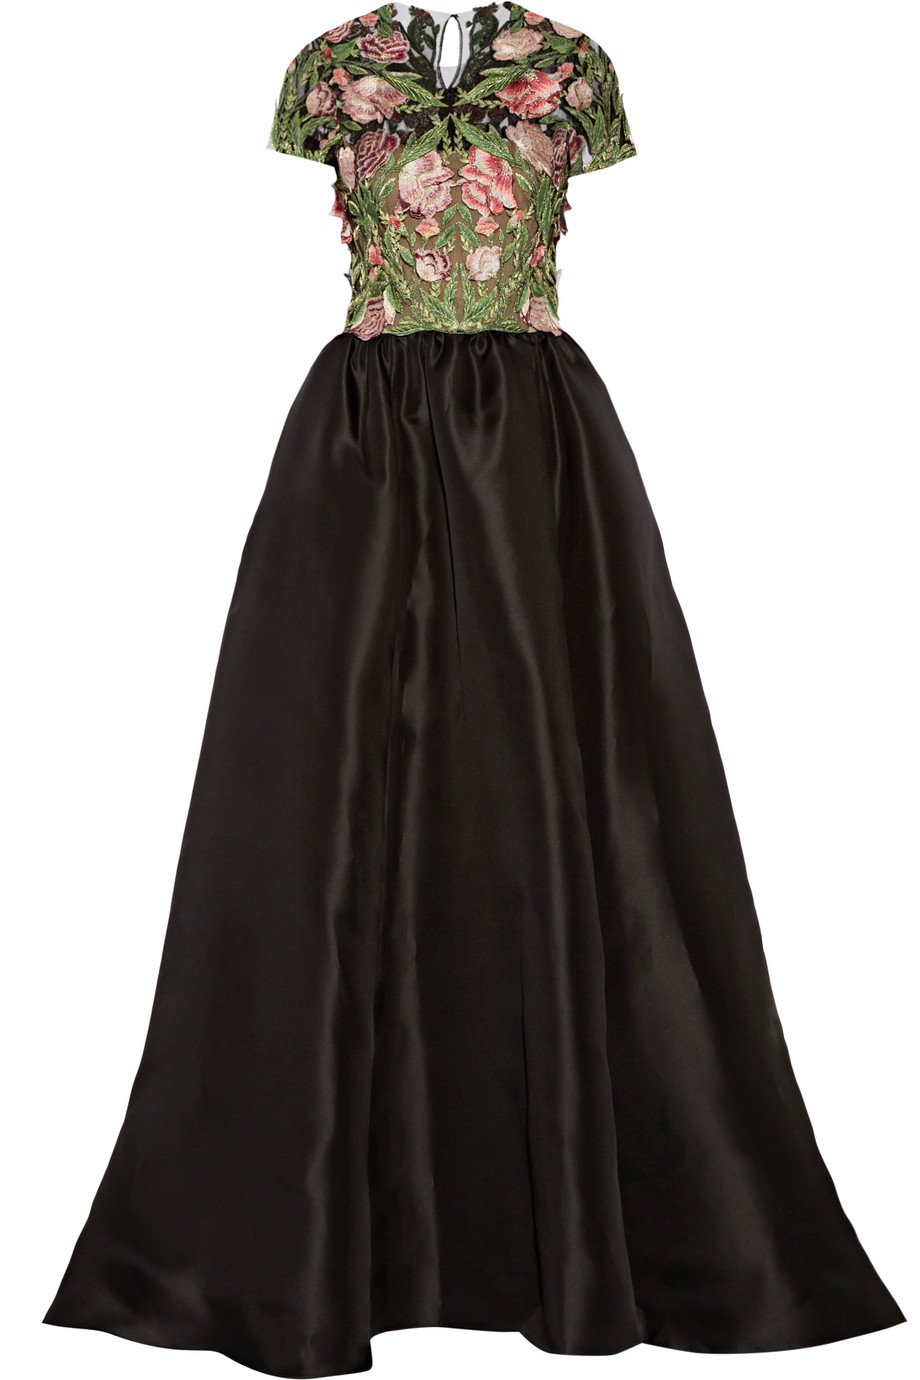 Marchesa Floral-Appliquéd Tulle and Silk-Faille Gown, Black, Women's - Floral, Size: 6